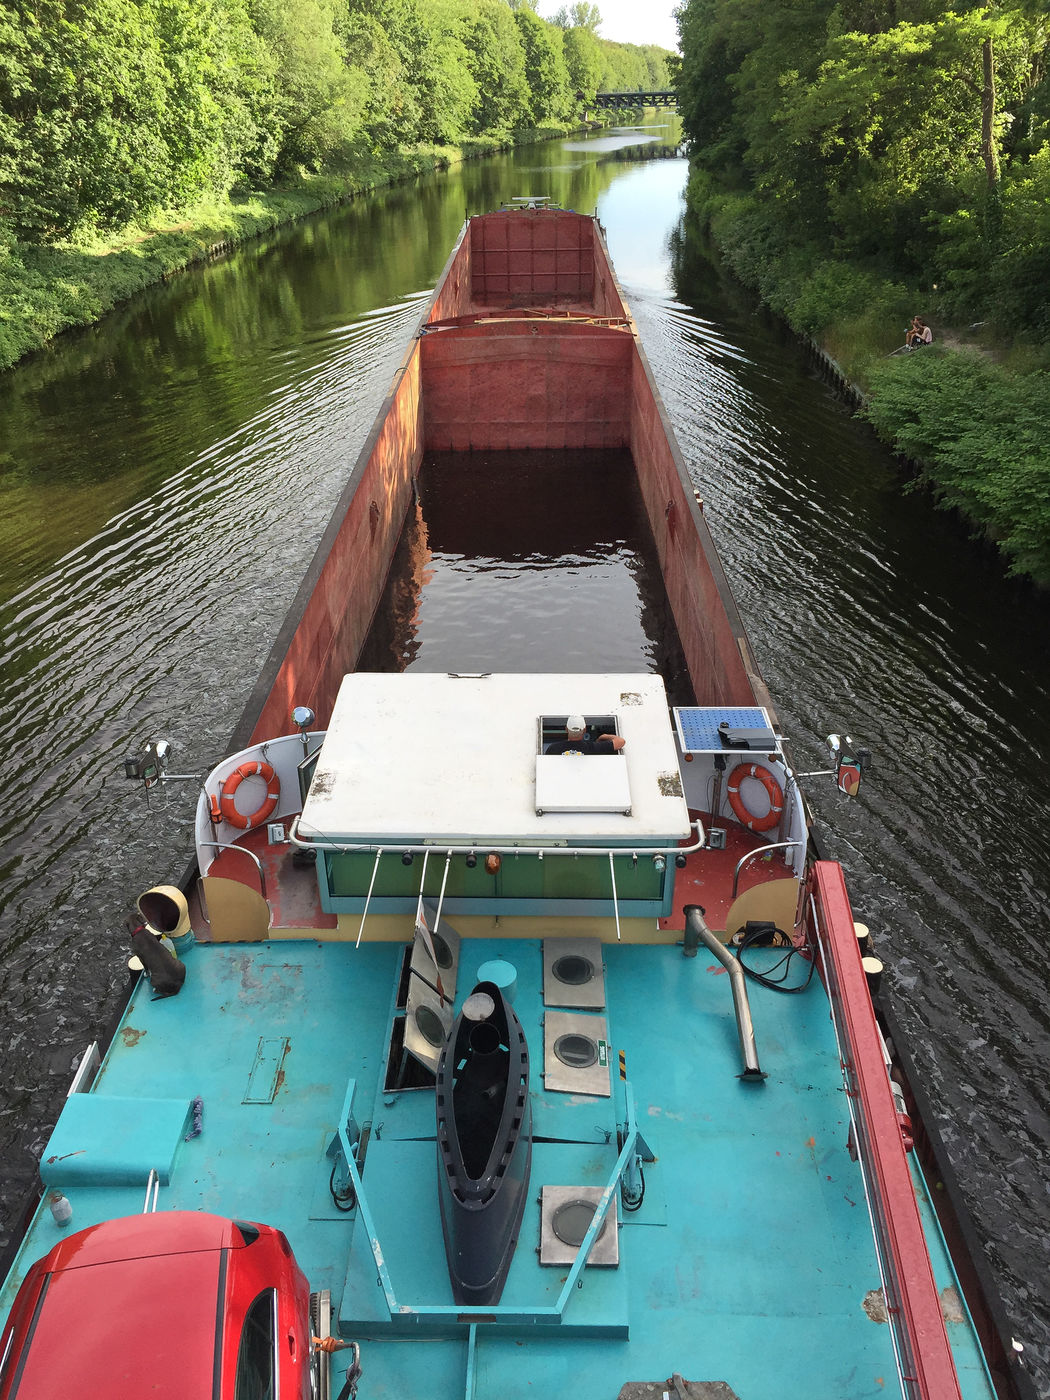 river barge in motion Barge Berlin Canal Canals And Waterways Car Dog Green Green Leaves In Motion Inland Water Vessel Nature Nature Nautical Vessel No People Outdoors River Barge Teltow Teltow Kanal Teltowkanal Transportation Trees Water Water Reflections Water Vessel Waterway